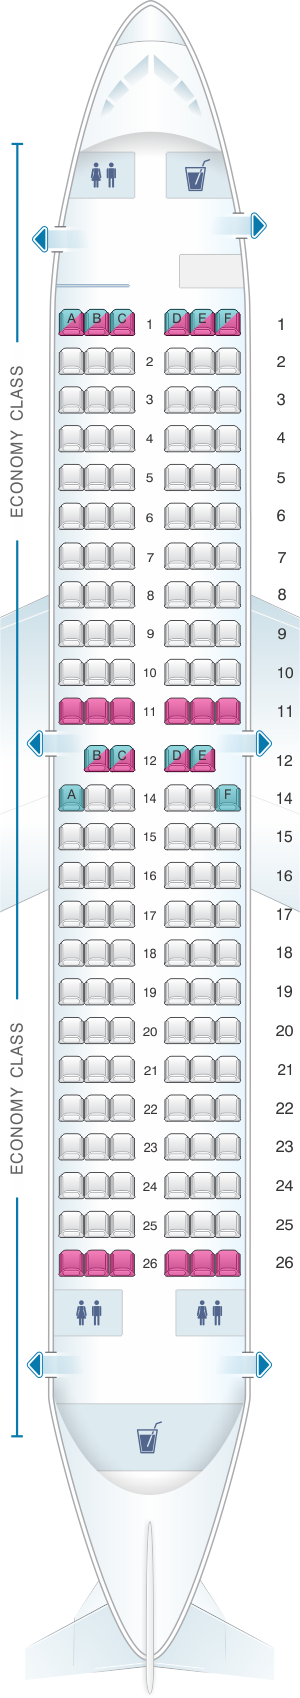 Seat map for Blue Panorama Boeing B737 300